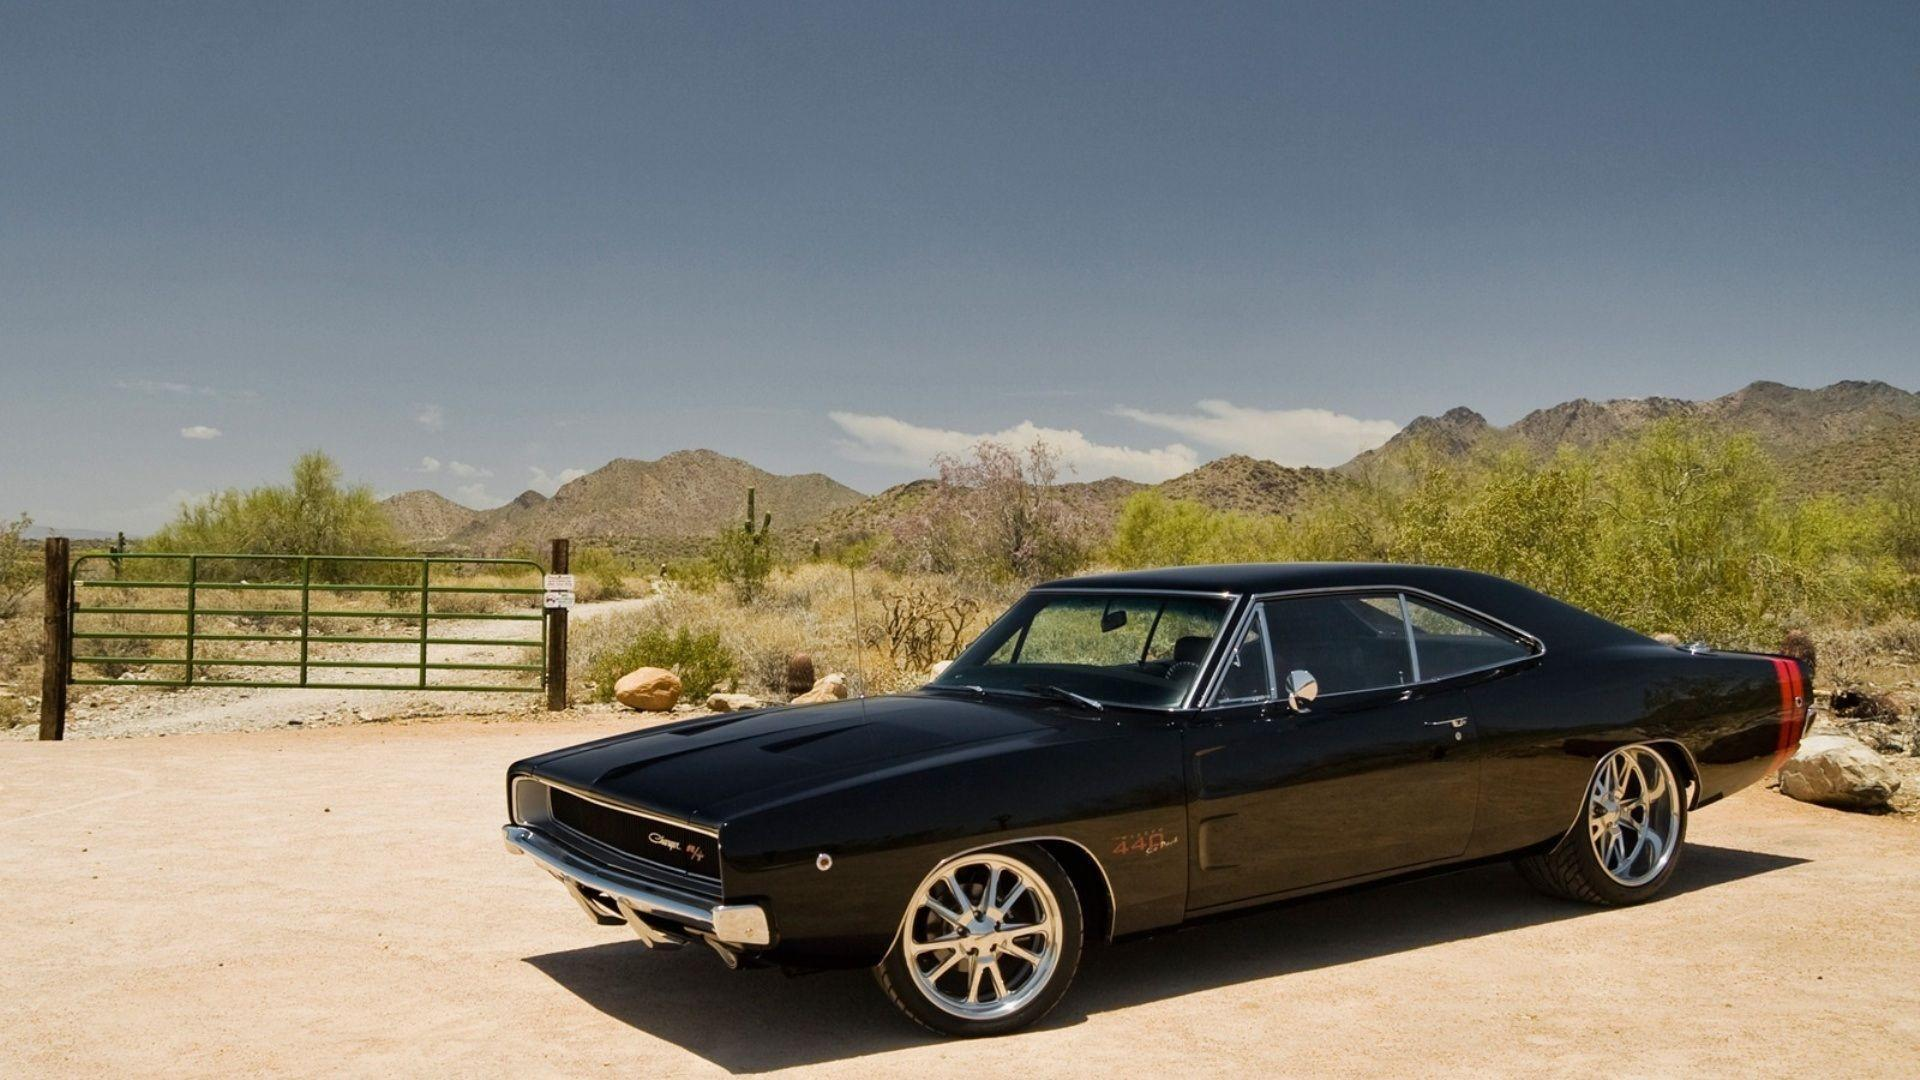 Nothing found for Cars Muscle Cars Dodge 1920X1080 Wallpaper Cars ...